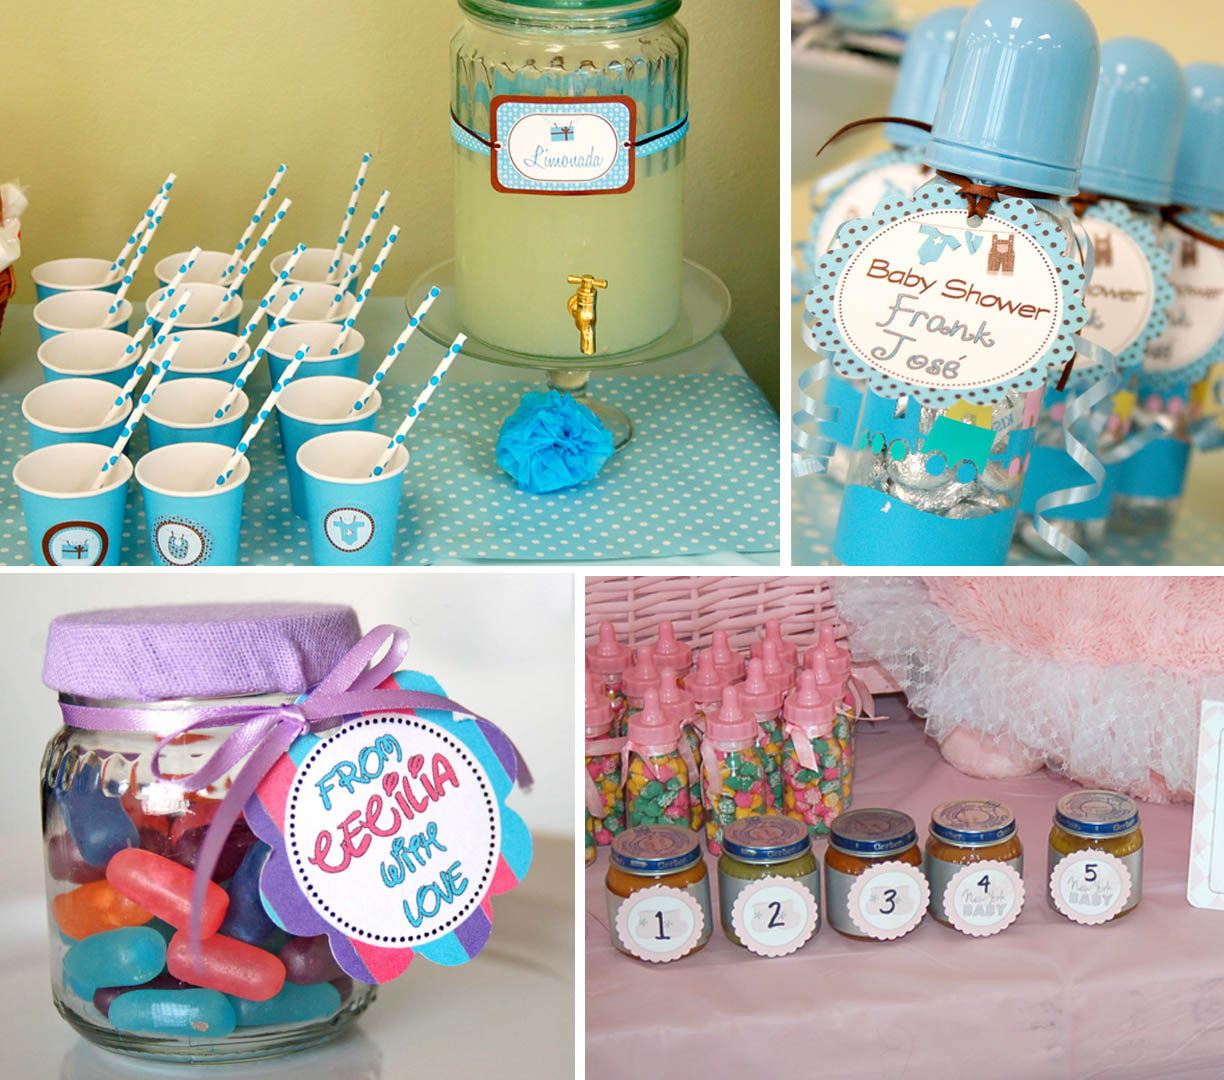 Trends for Images: Baby shower